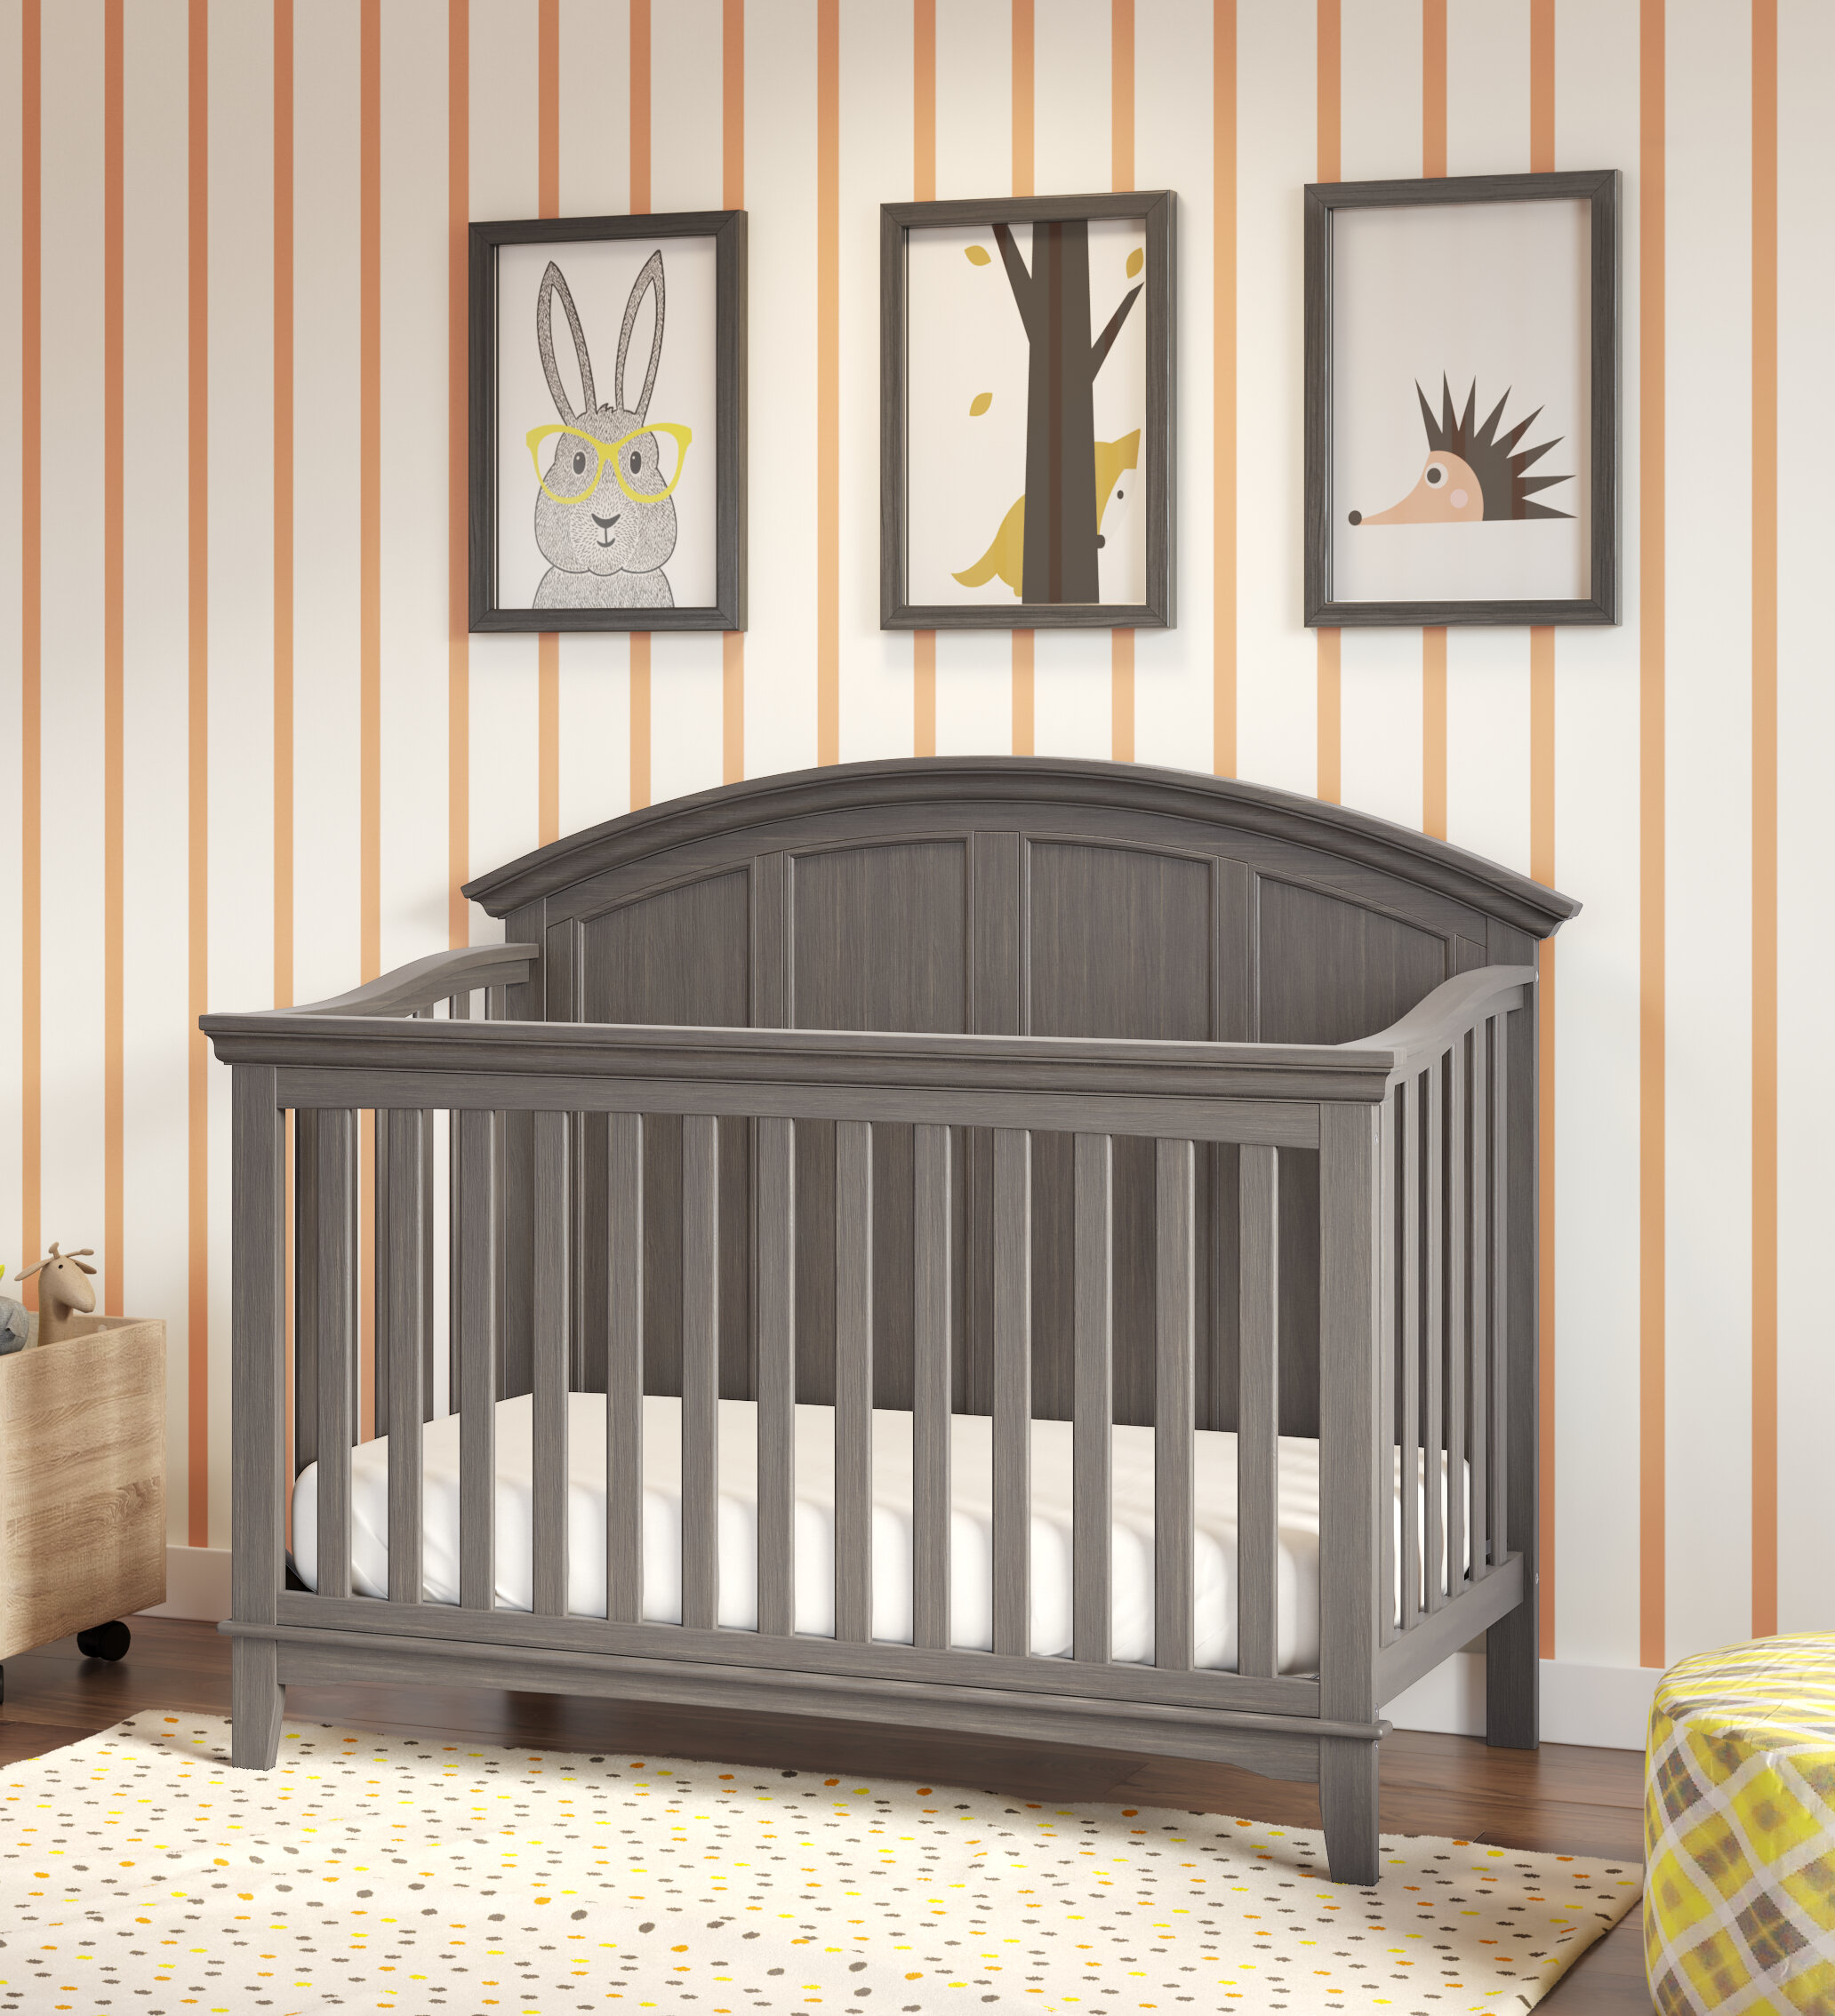 Grey Home Source Baby Cot Solid Pine Converts to Junior Bed with Teething Rails Height Adjustable